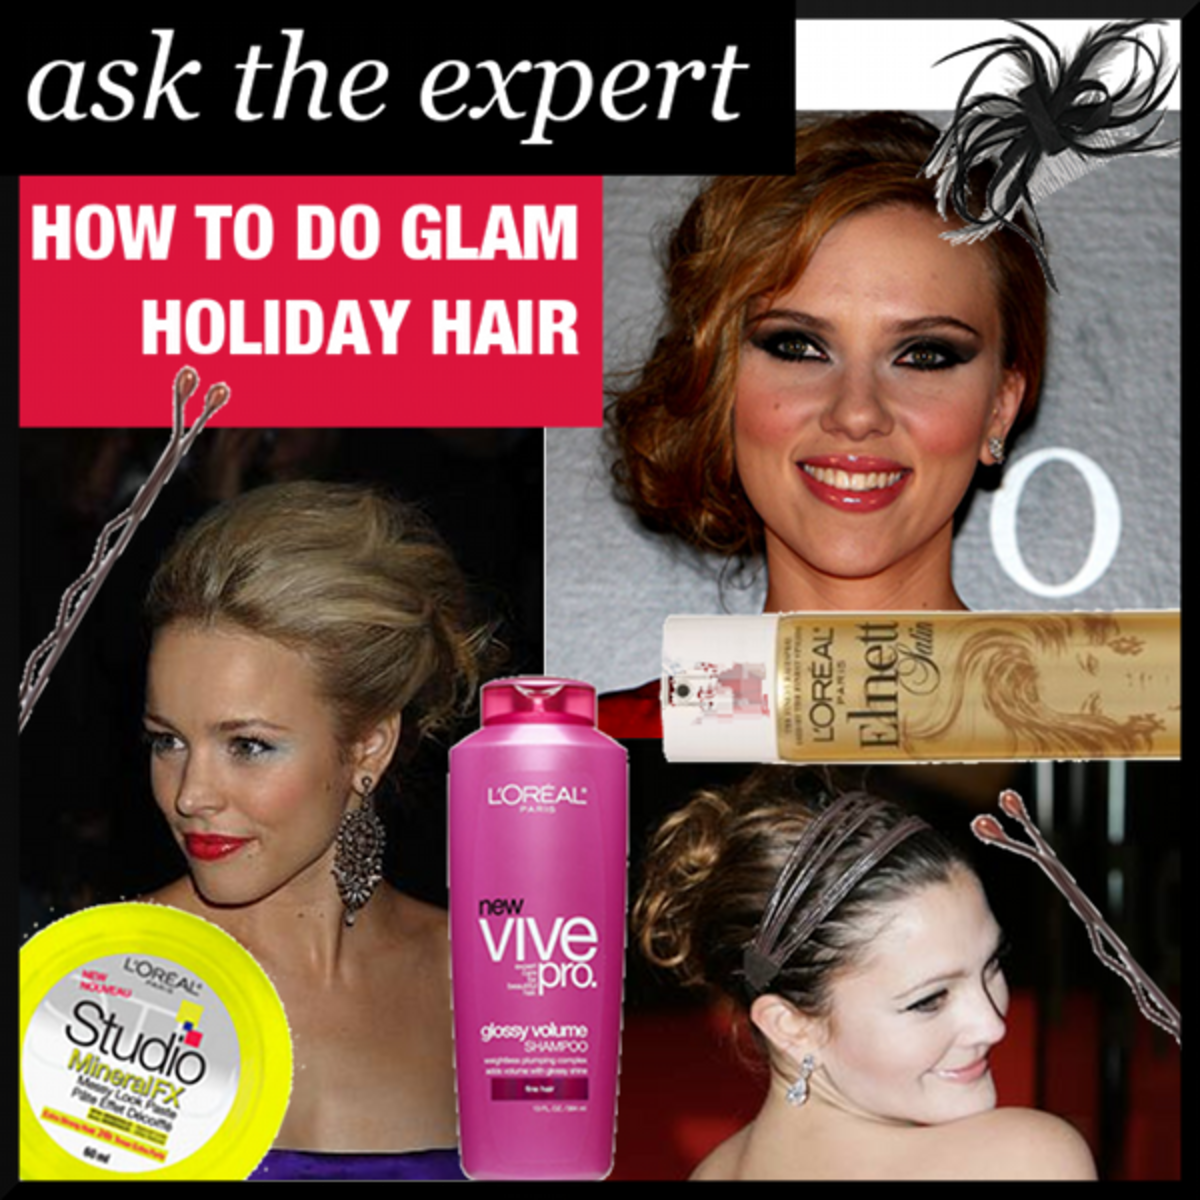 ask-the-expert-glam-holiday-hair